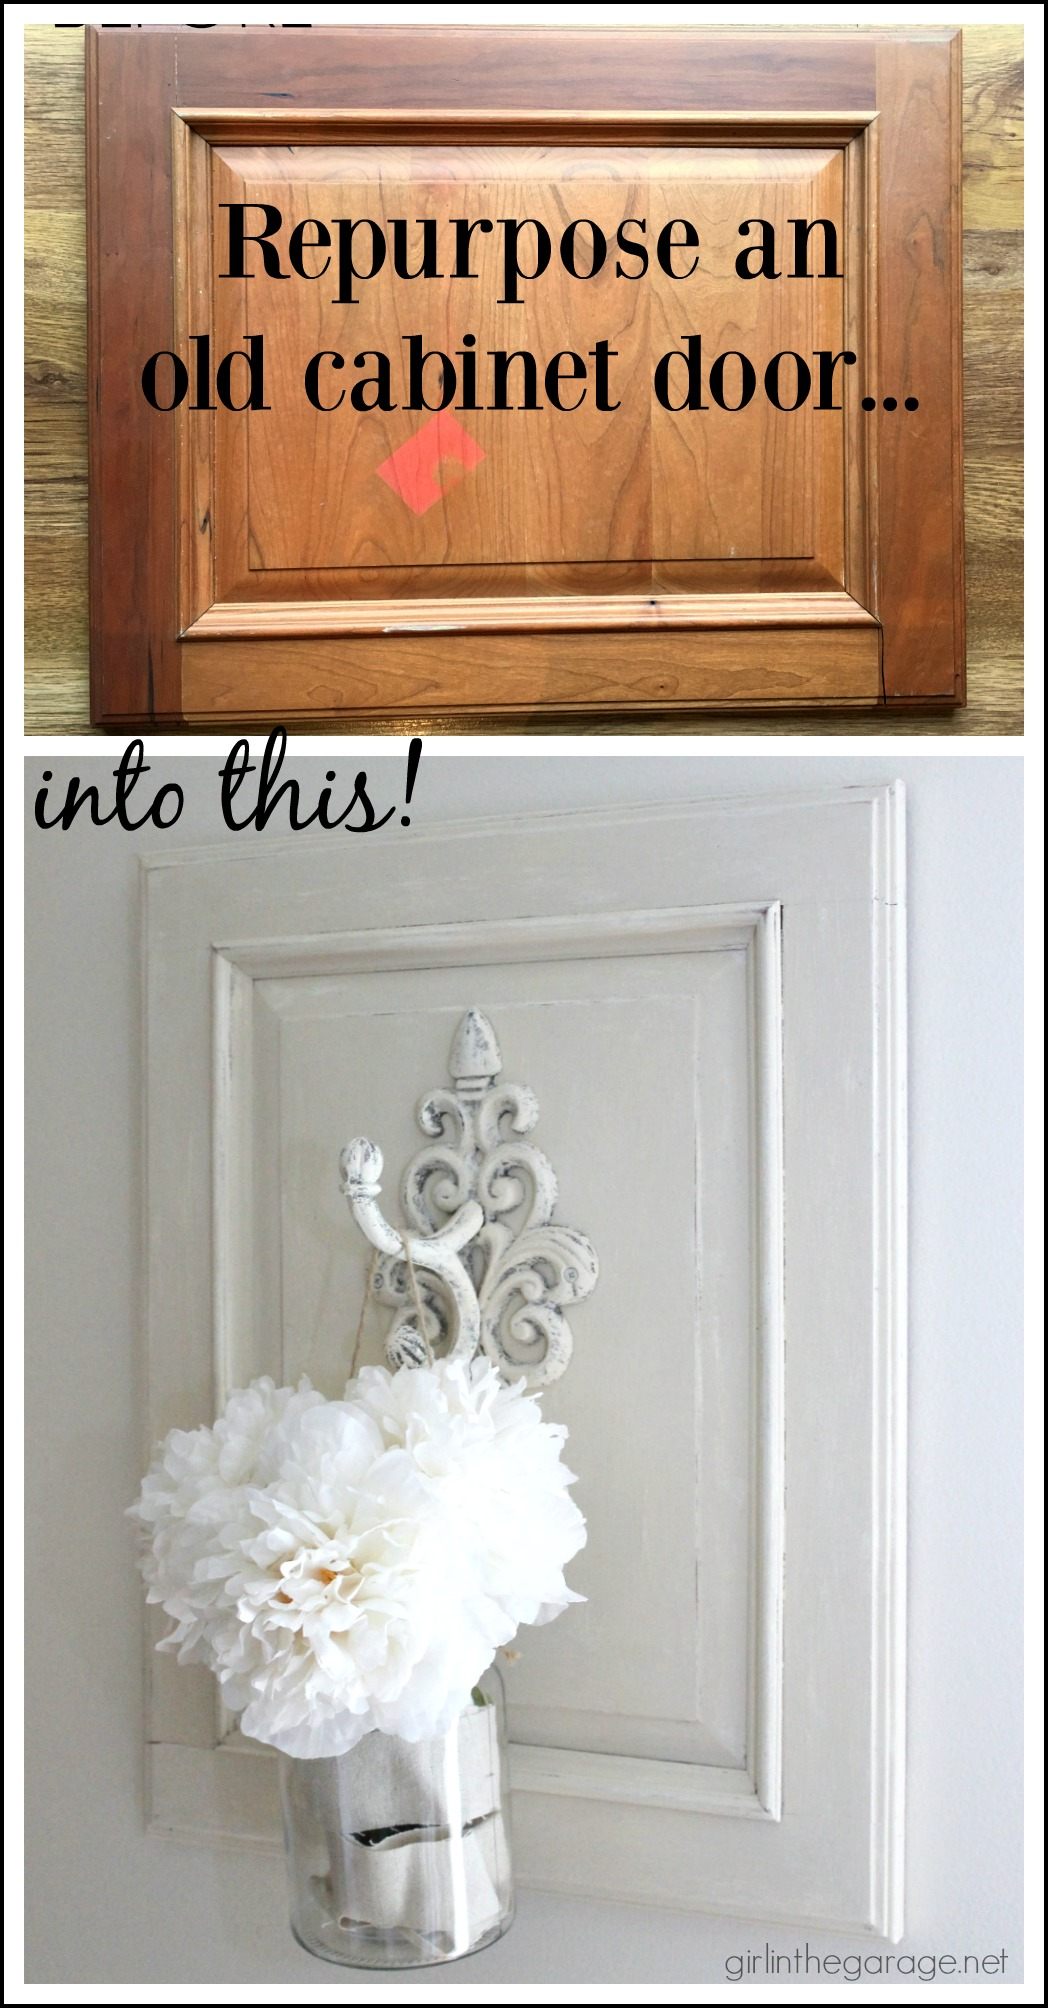 Incroyable DIY Repurposed Cabinet Door   Upcycled Trash To Treasure Makeover By Girl  In The Garage